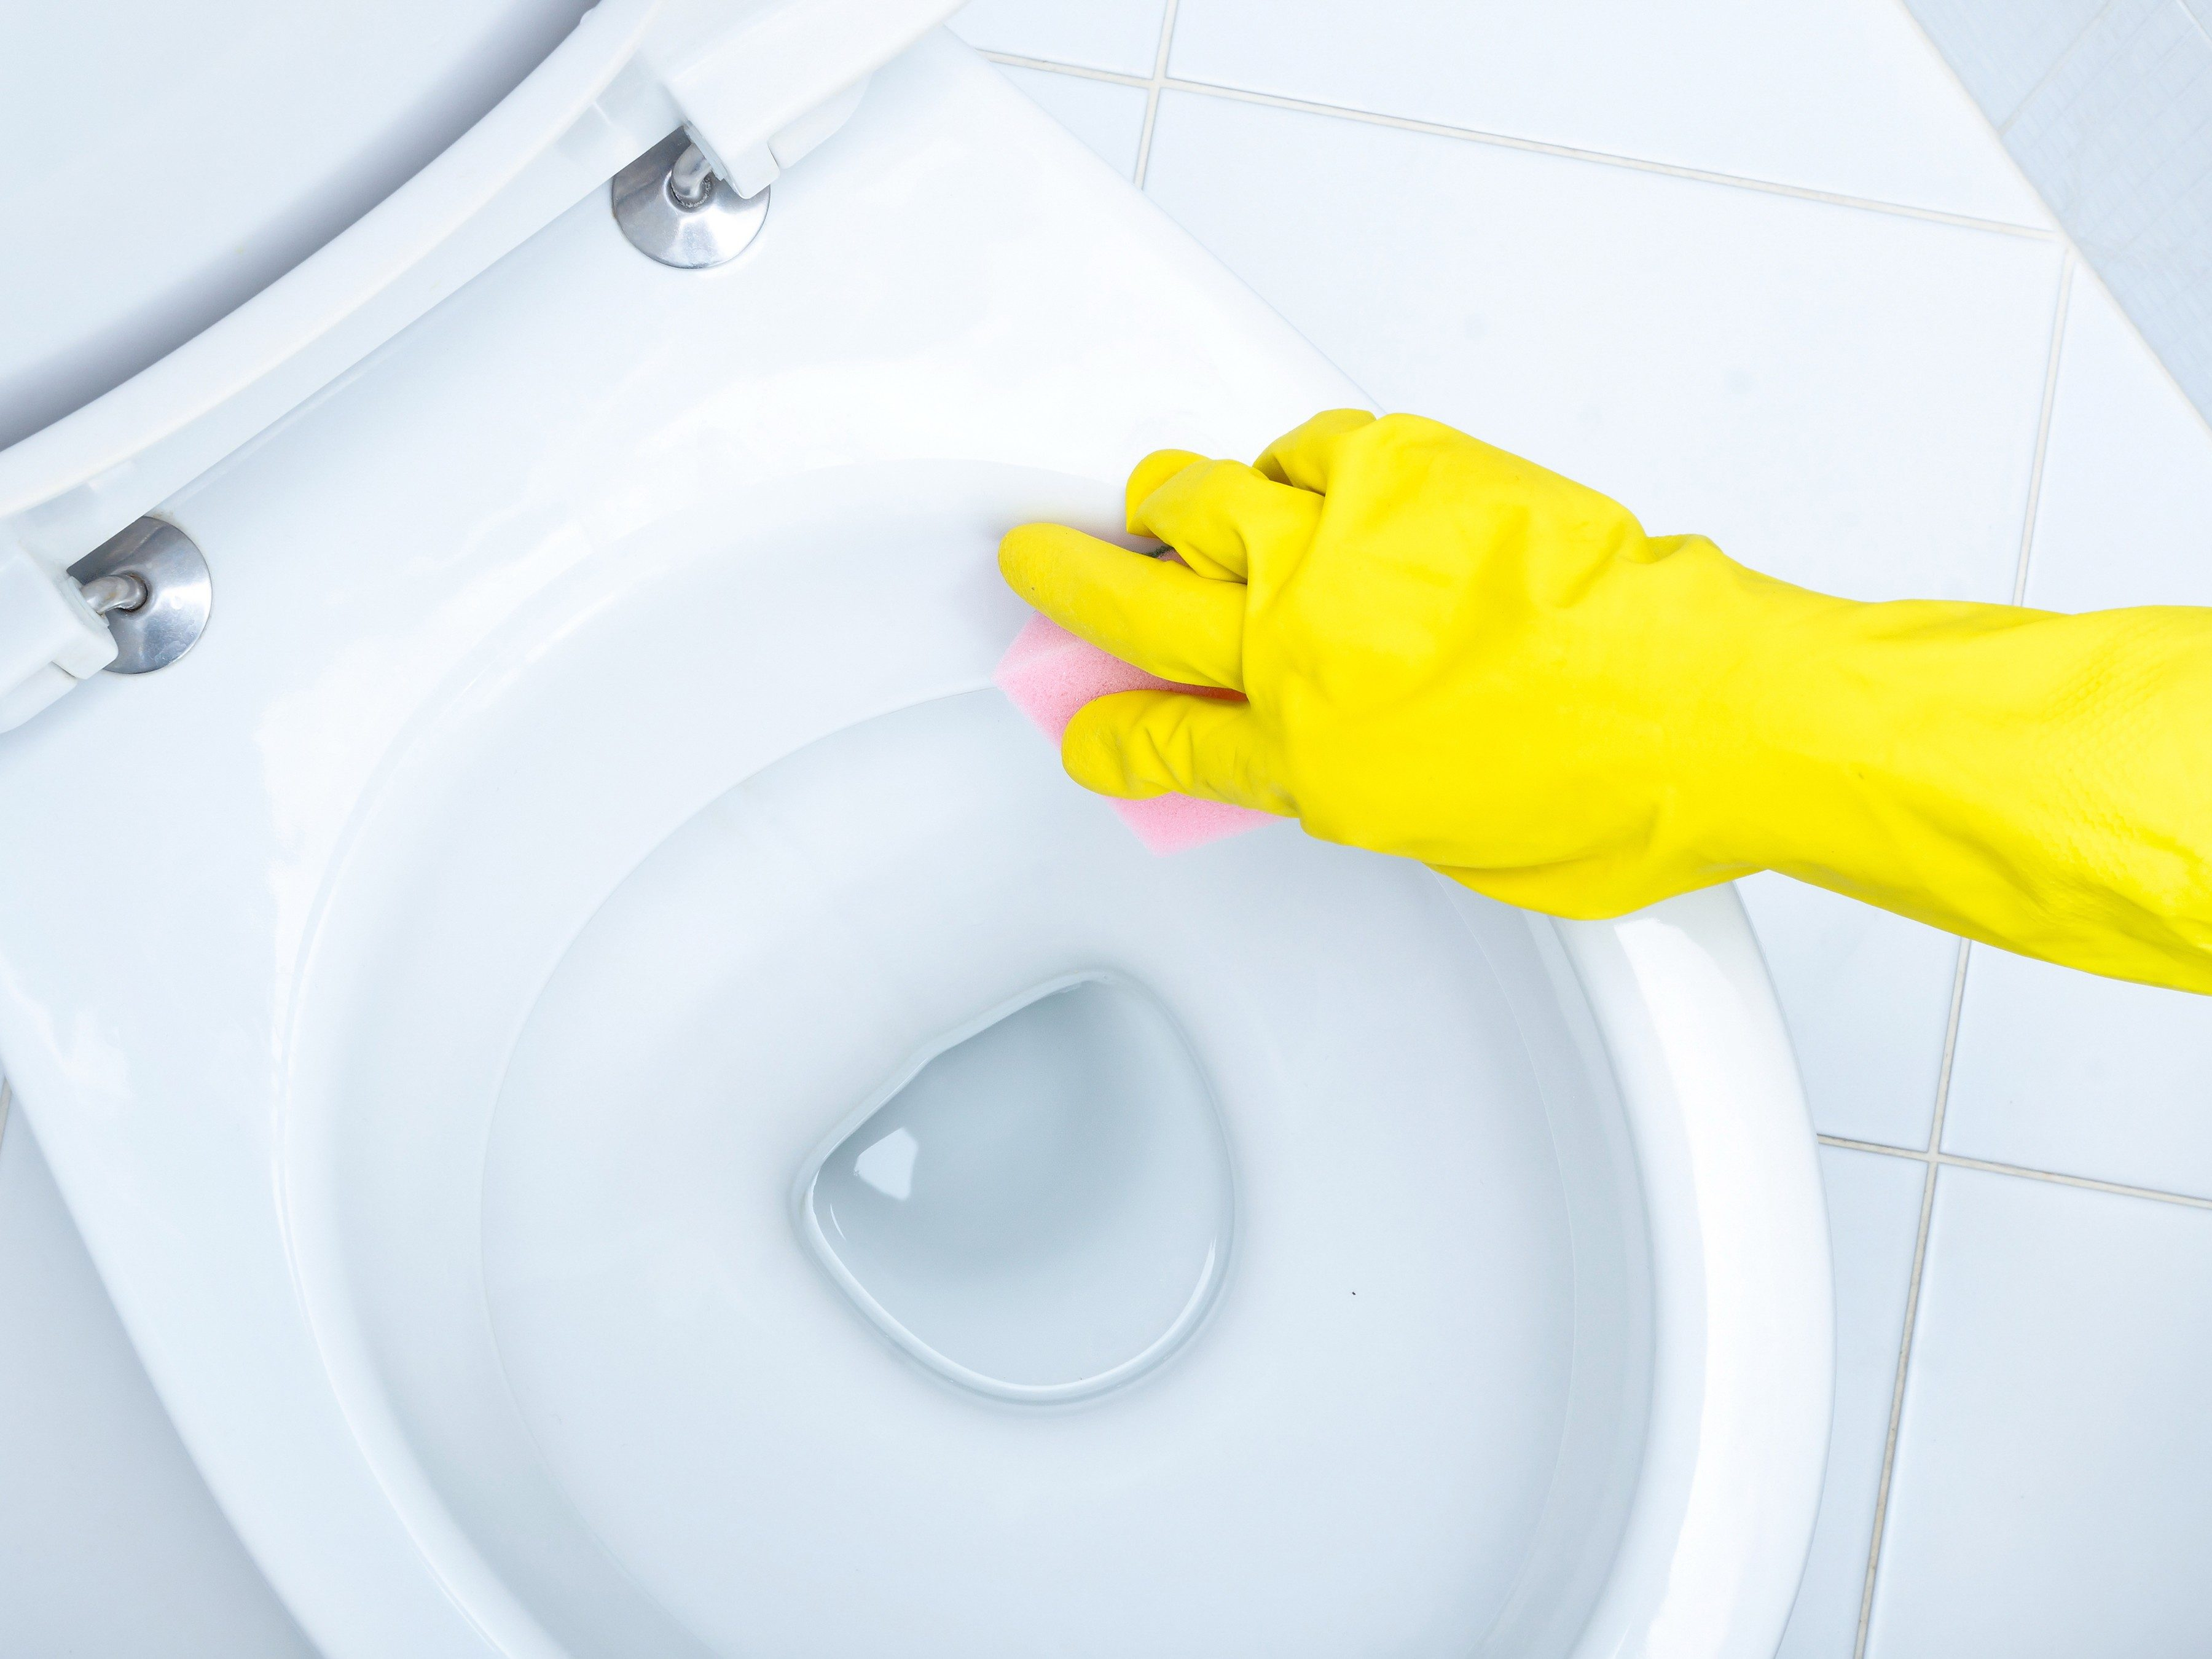 5. Use Lemons to Clean Your Toilet